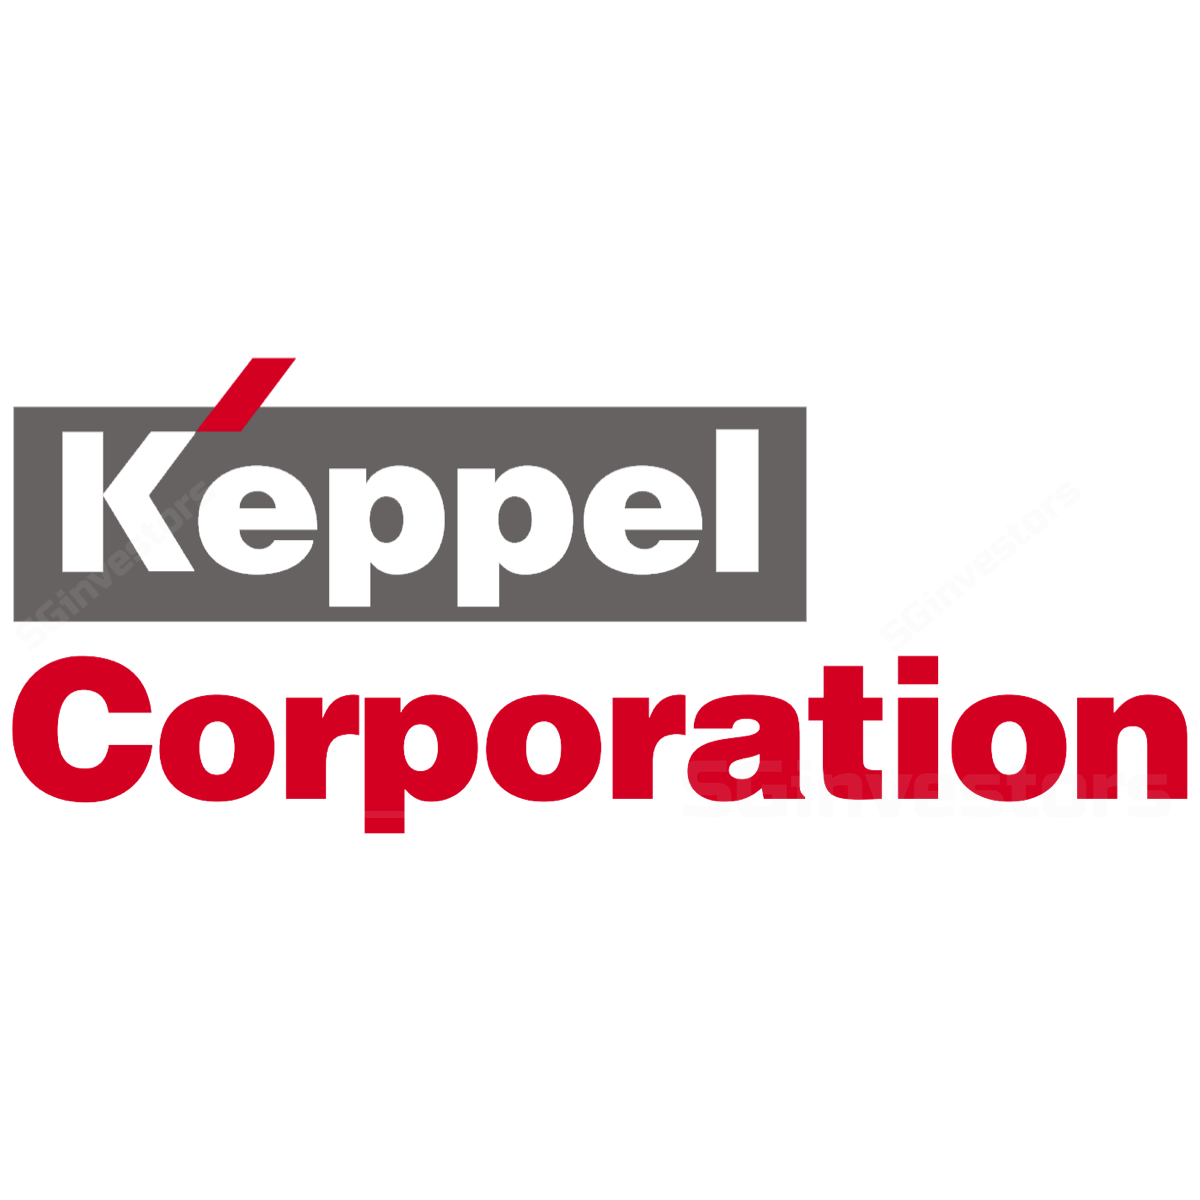 Keppel Corp - RHB Invest 2017-07-21: Slower Property And O&M